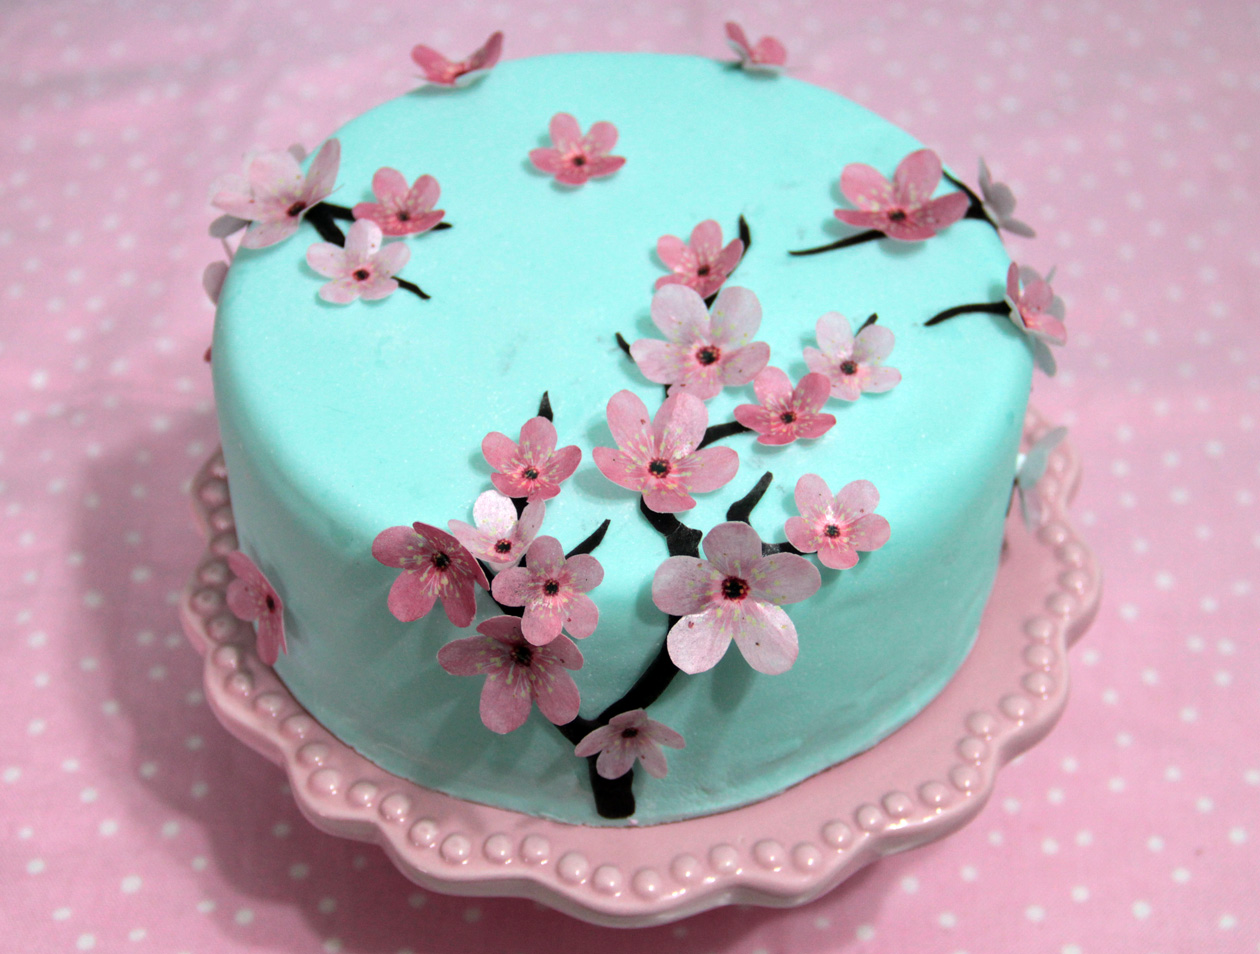 Cake Decorating With Edible Paper : Edible wafer paper Cherry Blossom Felt